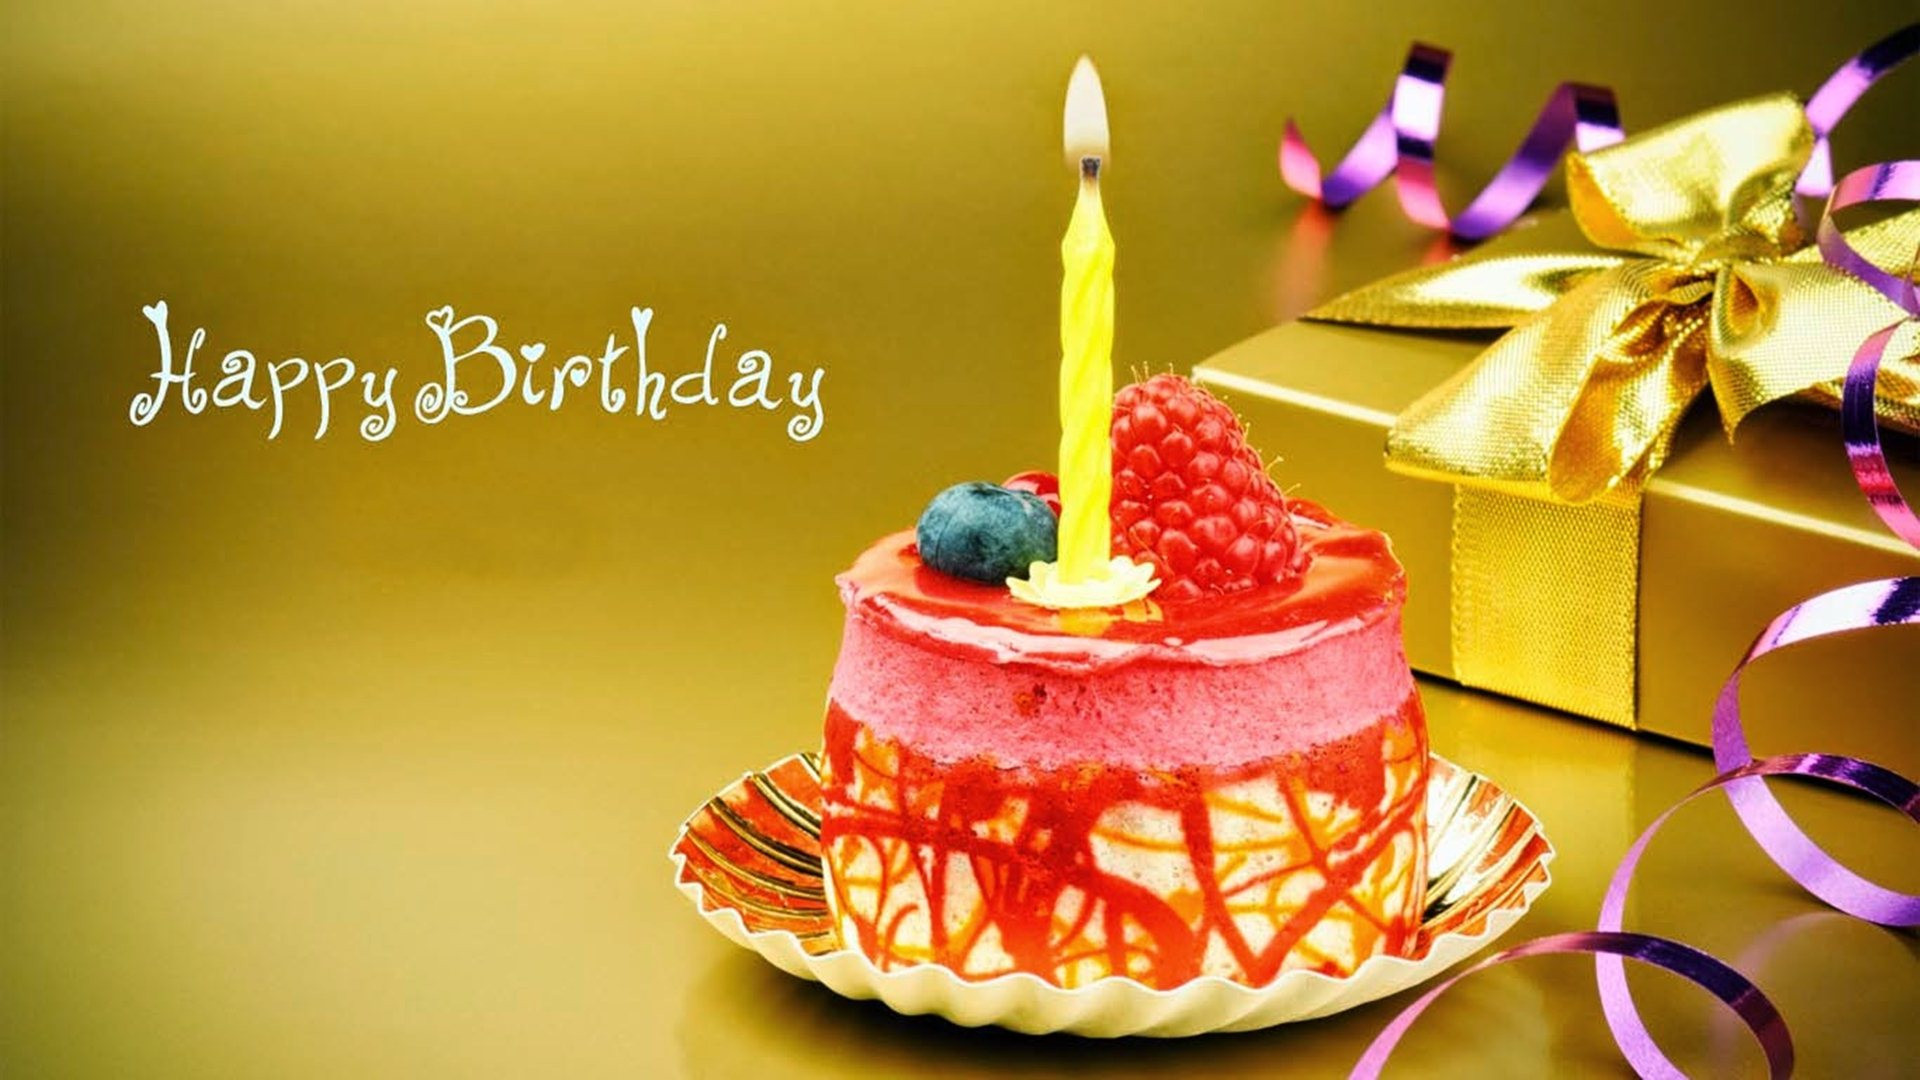 Best ideas about Birthday Wish Pic . Save or Pin birthday wishes images HD Now.